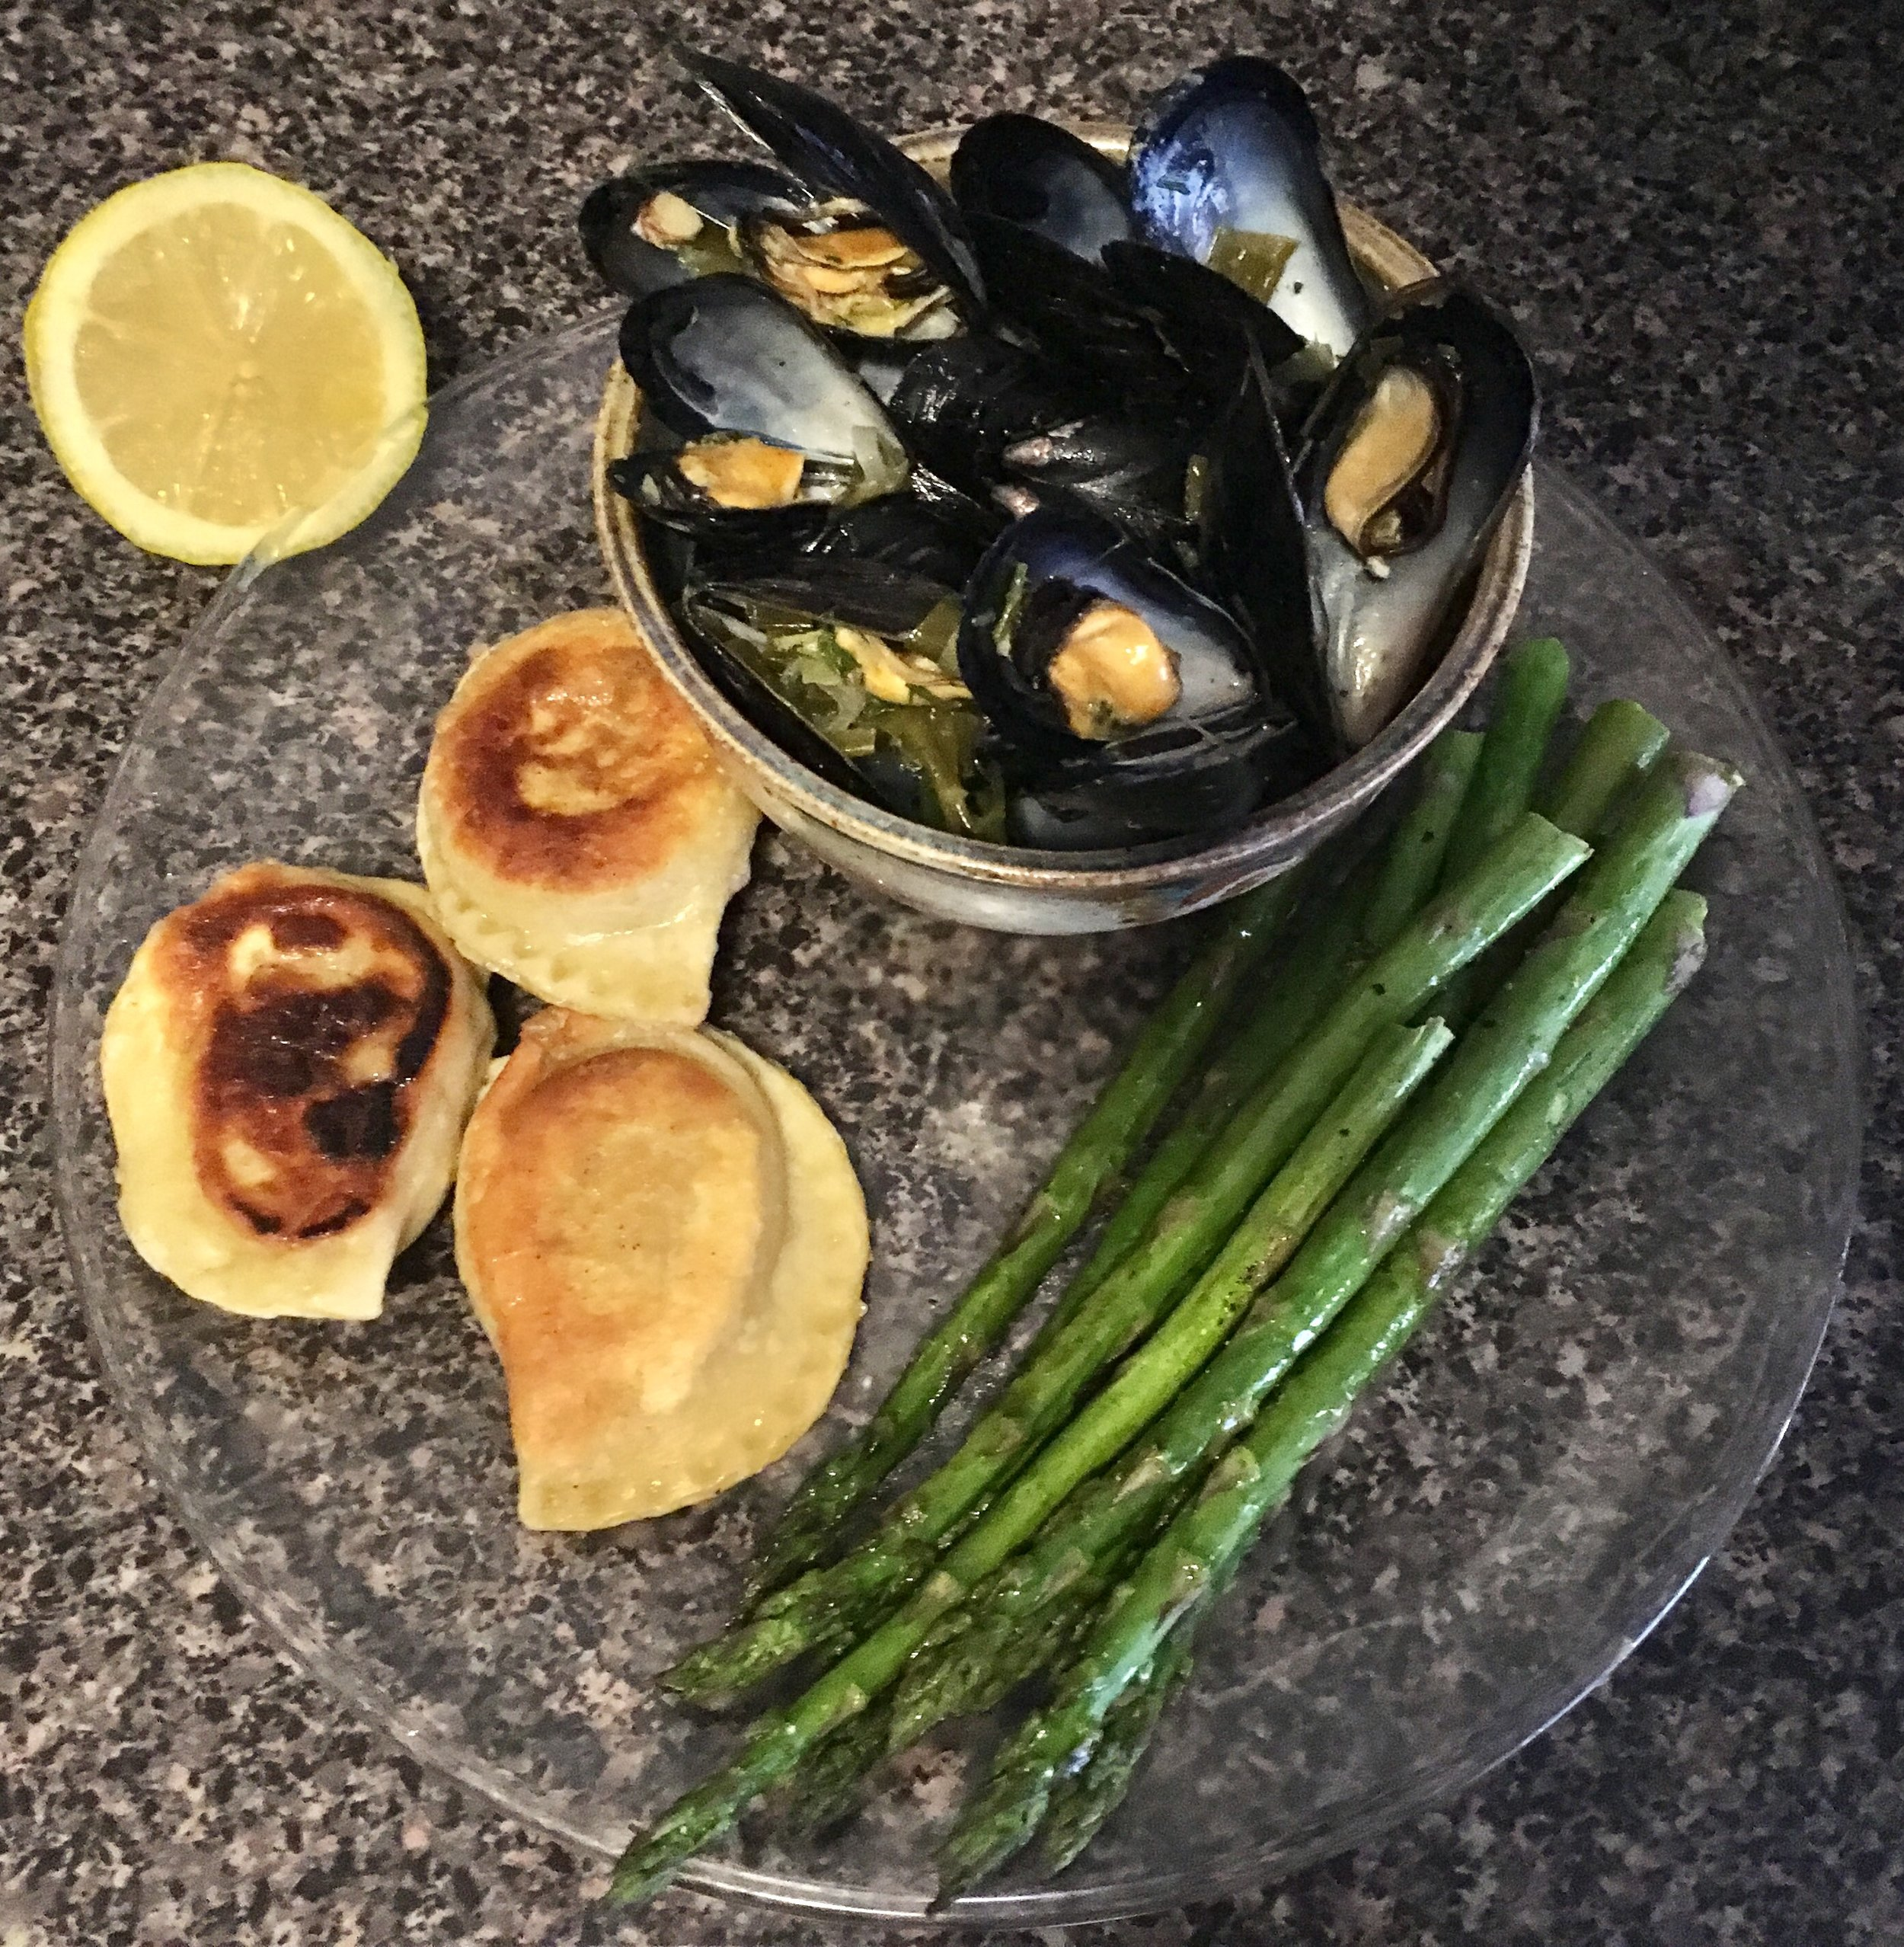 Mussels cooked in a garlic scape and dill white sauce with perogies and asparagus